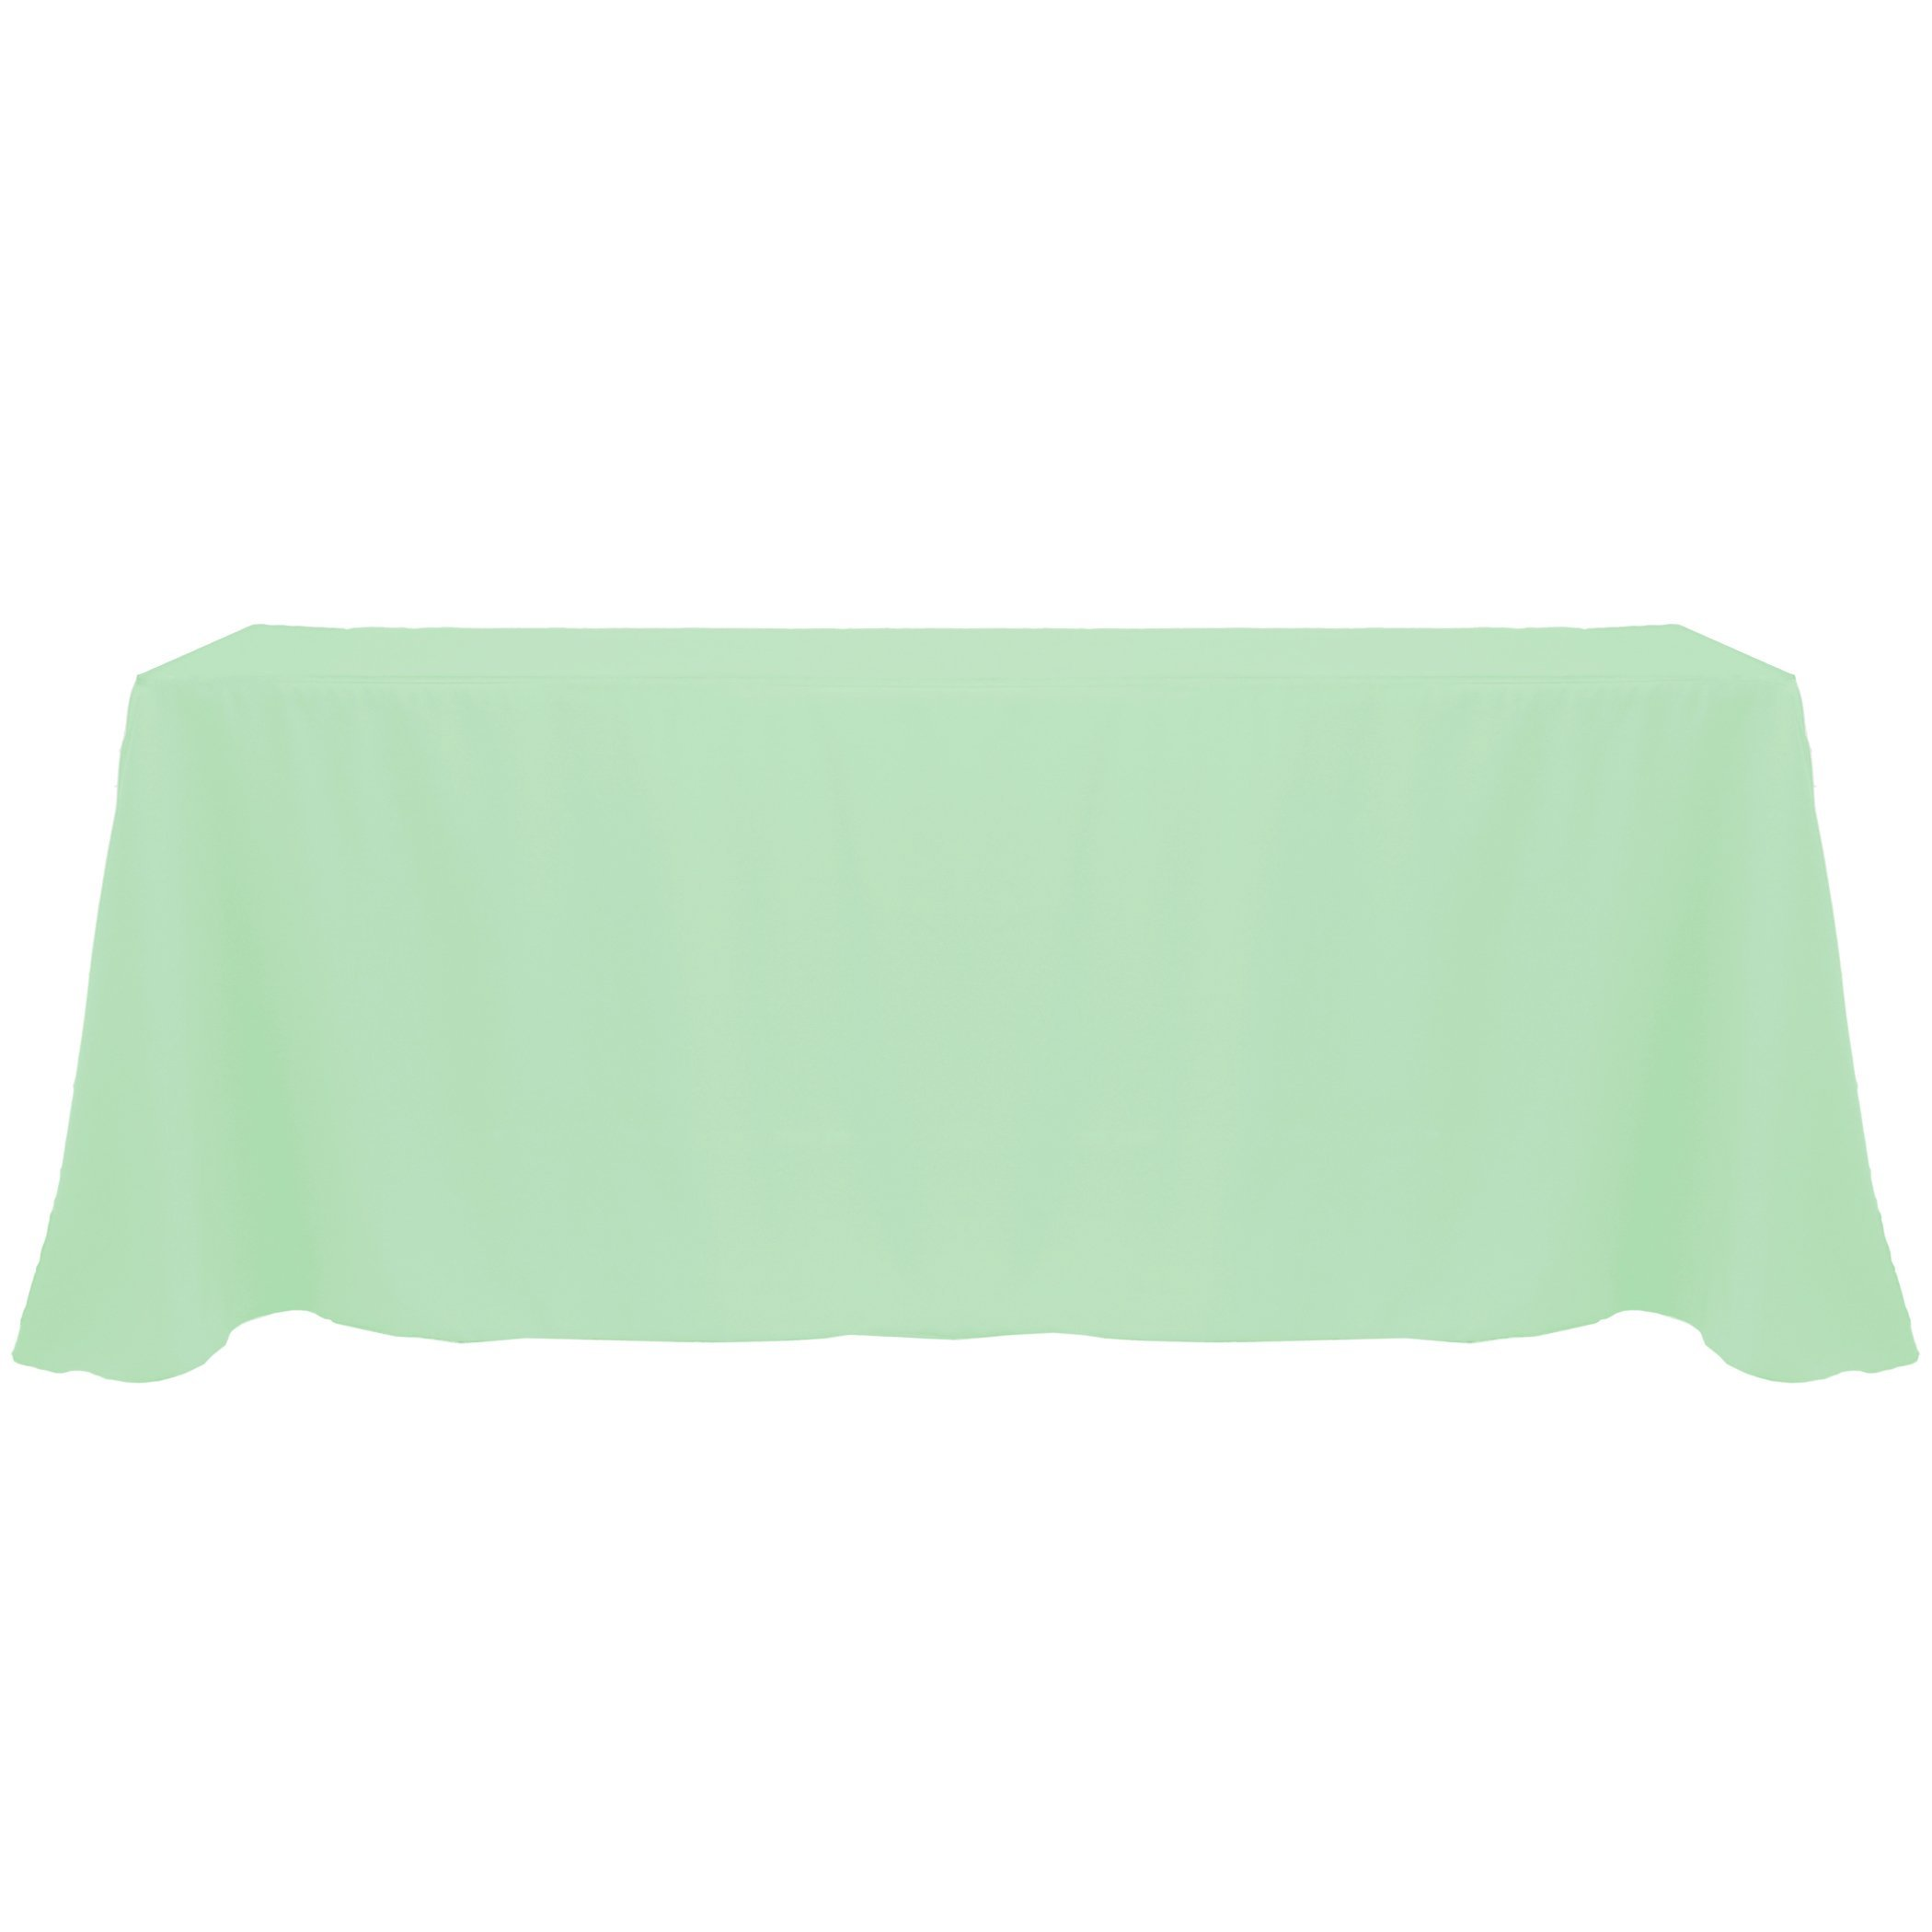 Ultimate Textile (20 Pack) 90 x 132-Inch Rectangular Polyester Linen Tablecloth with Rounded Corners - for Wedding, Restaurant or Banquet use, Mint Light Green